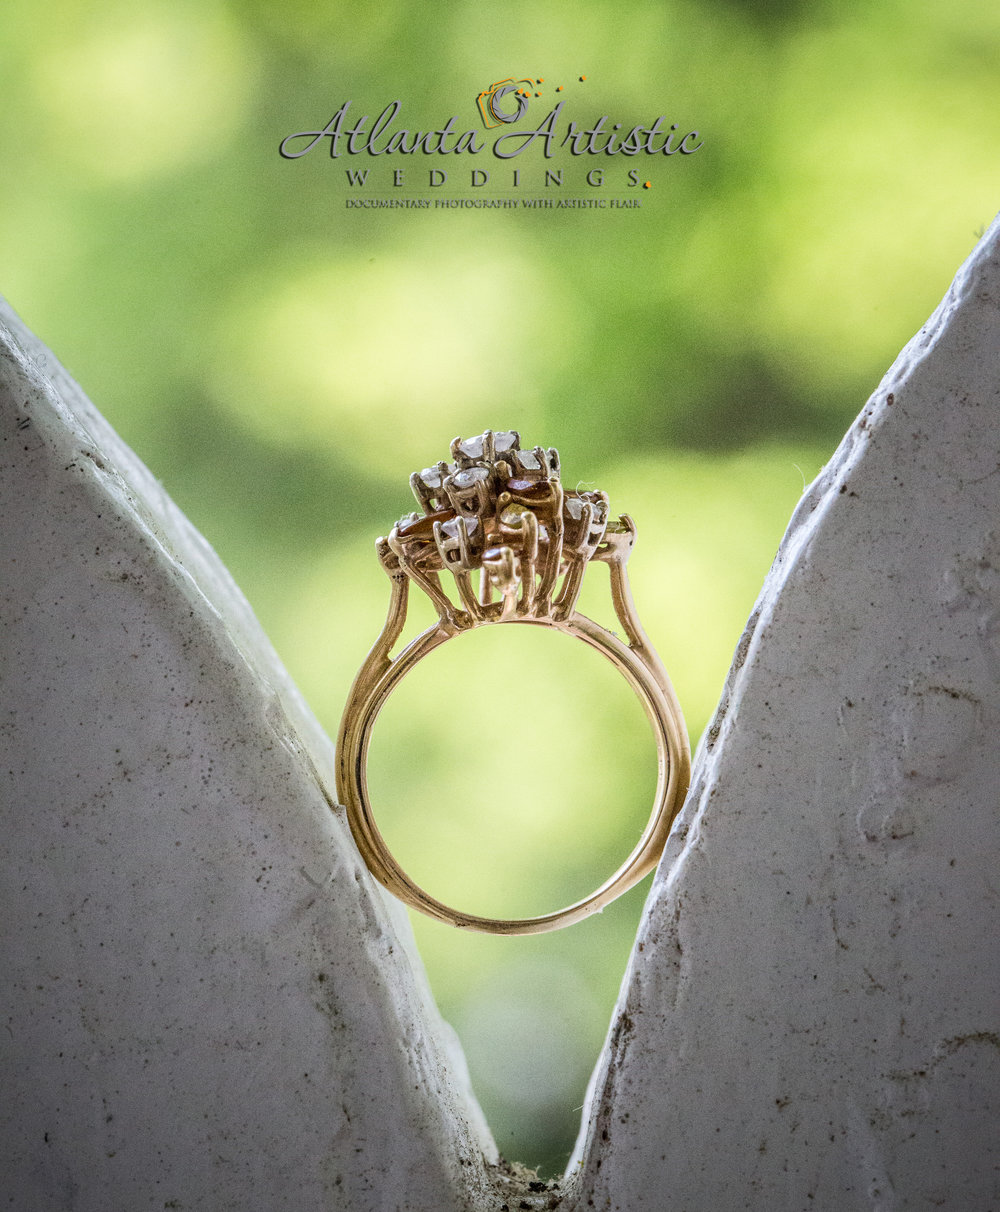 Atlanta Wedding Photographers use Gingerbread Detail of Historic Venue to Display Wedding Rings